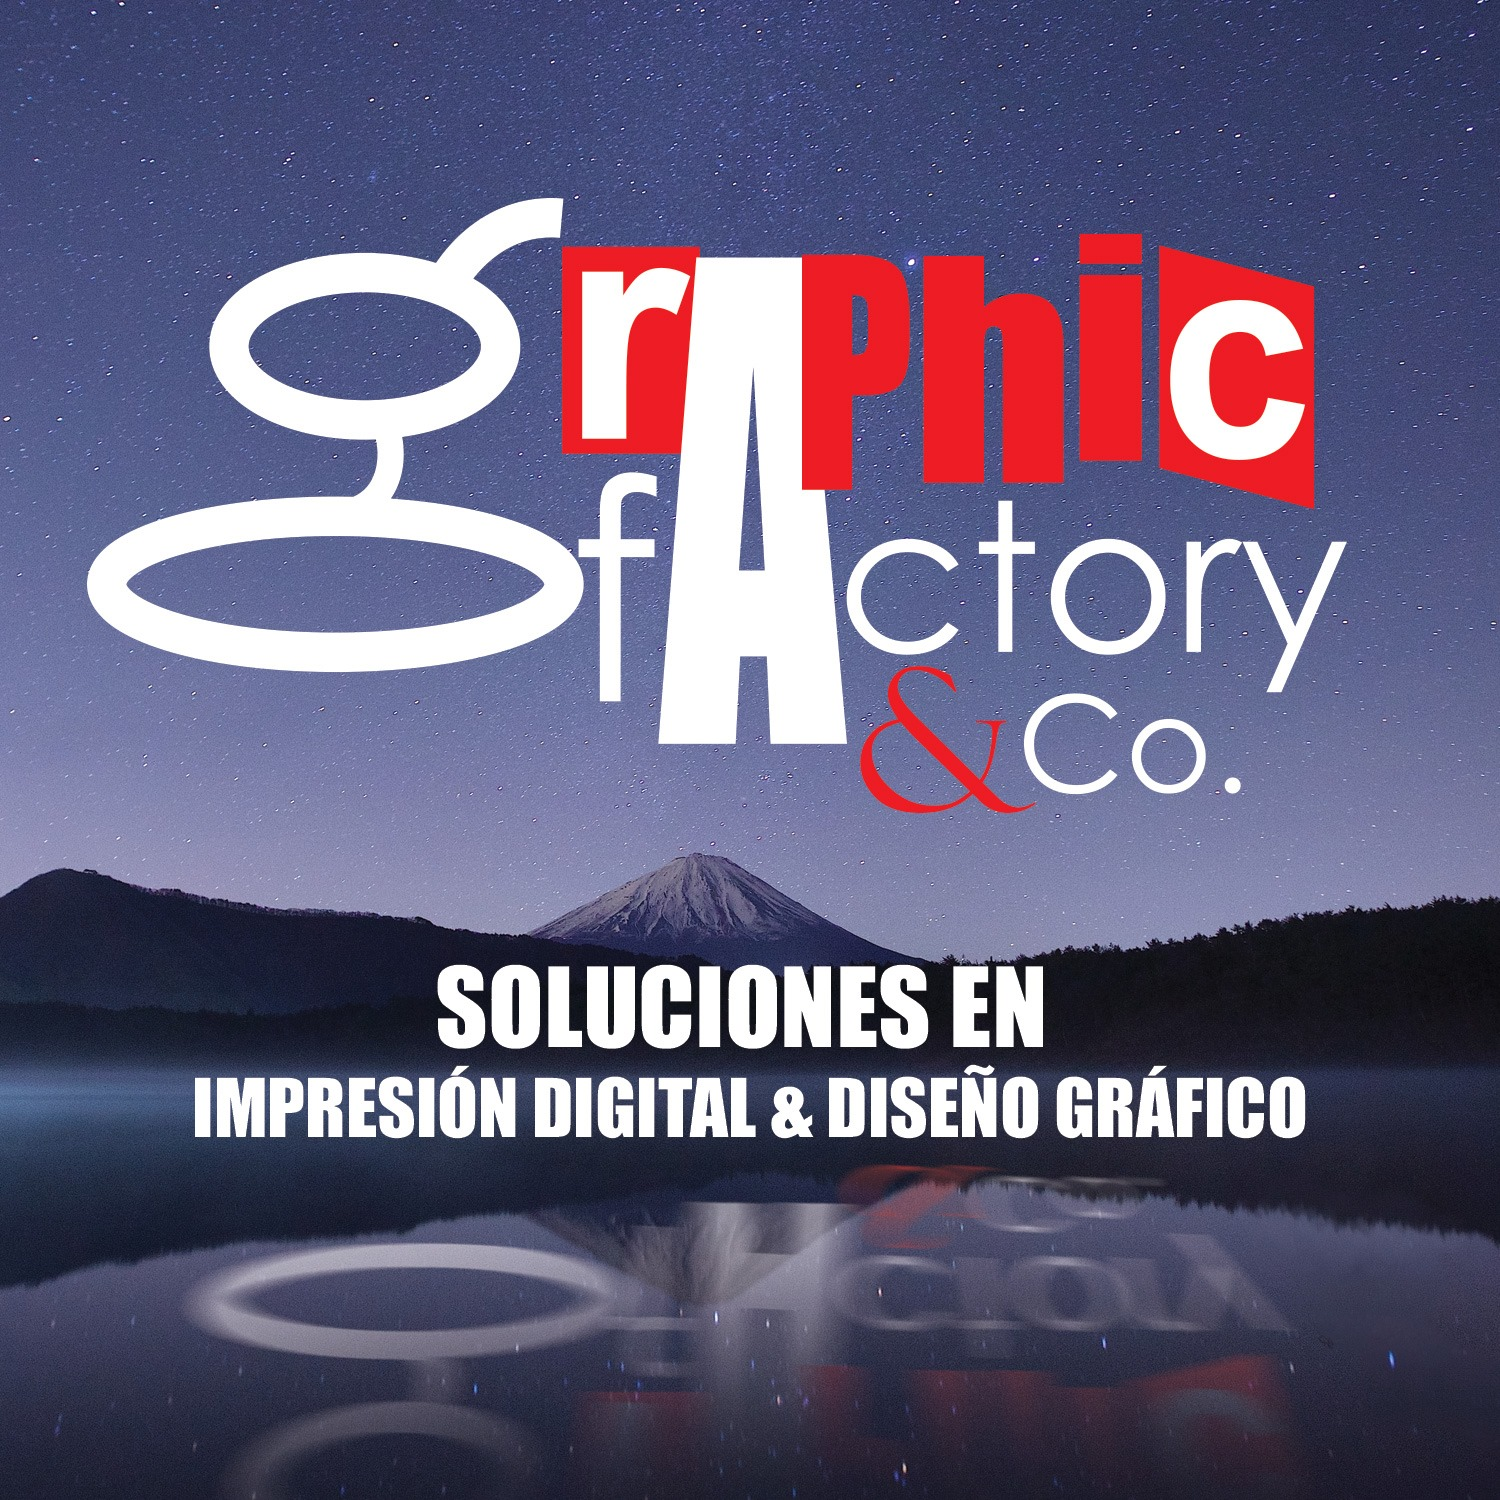 GRAPHIC FACTORY & COMPANY